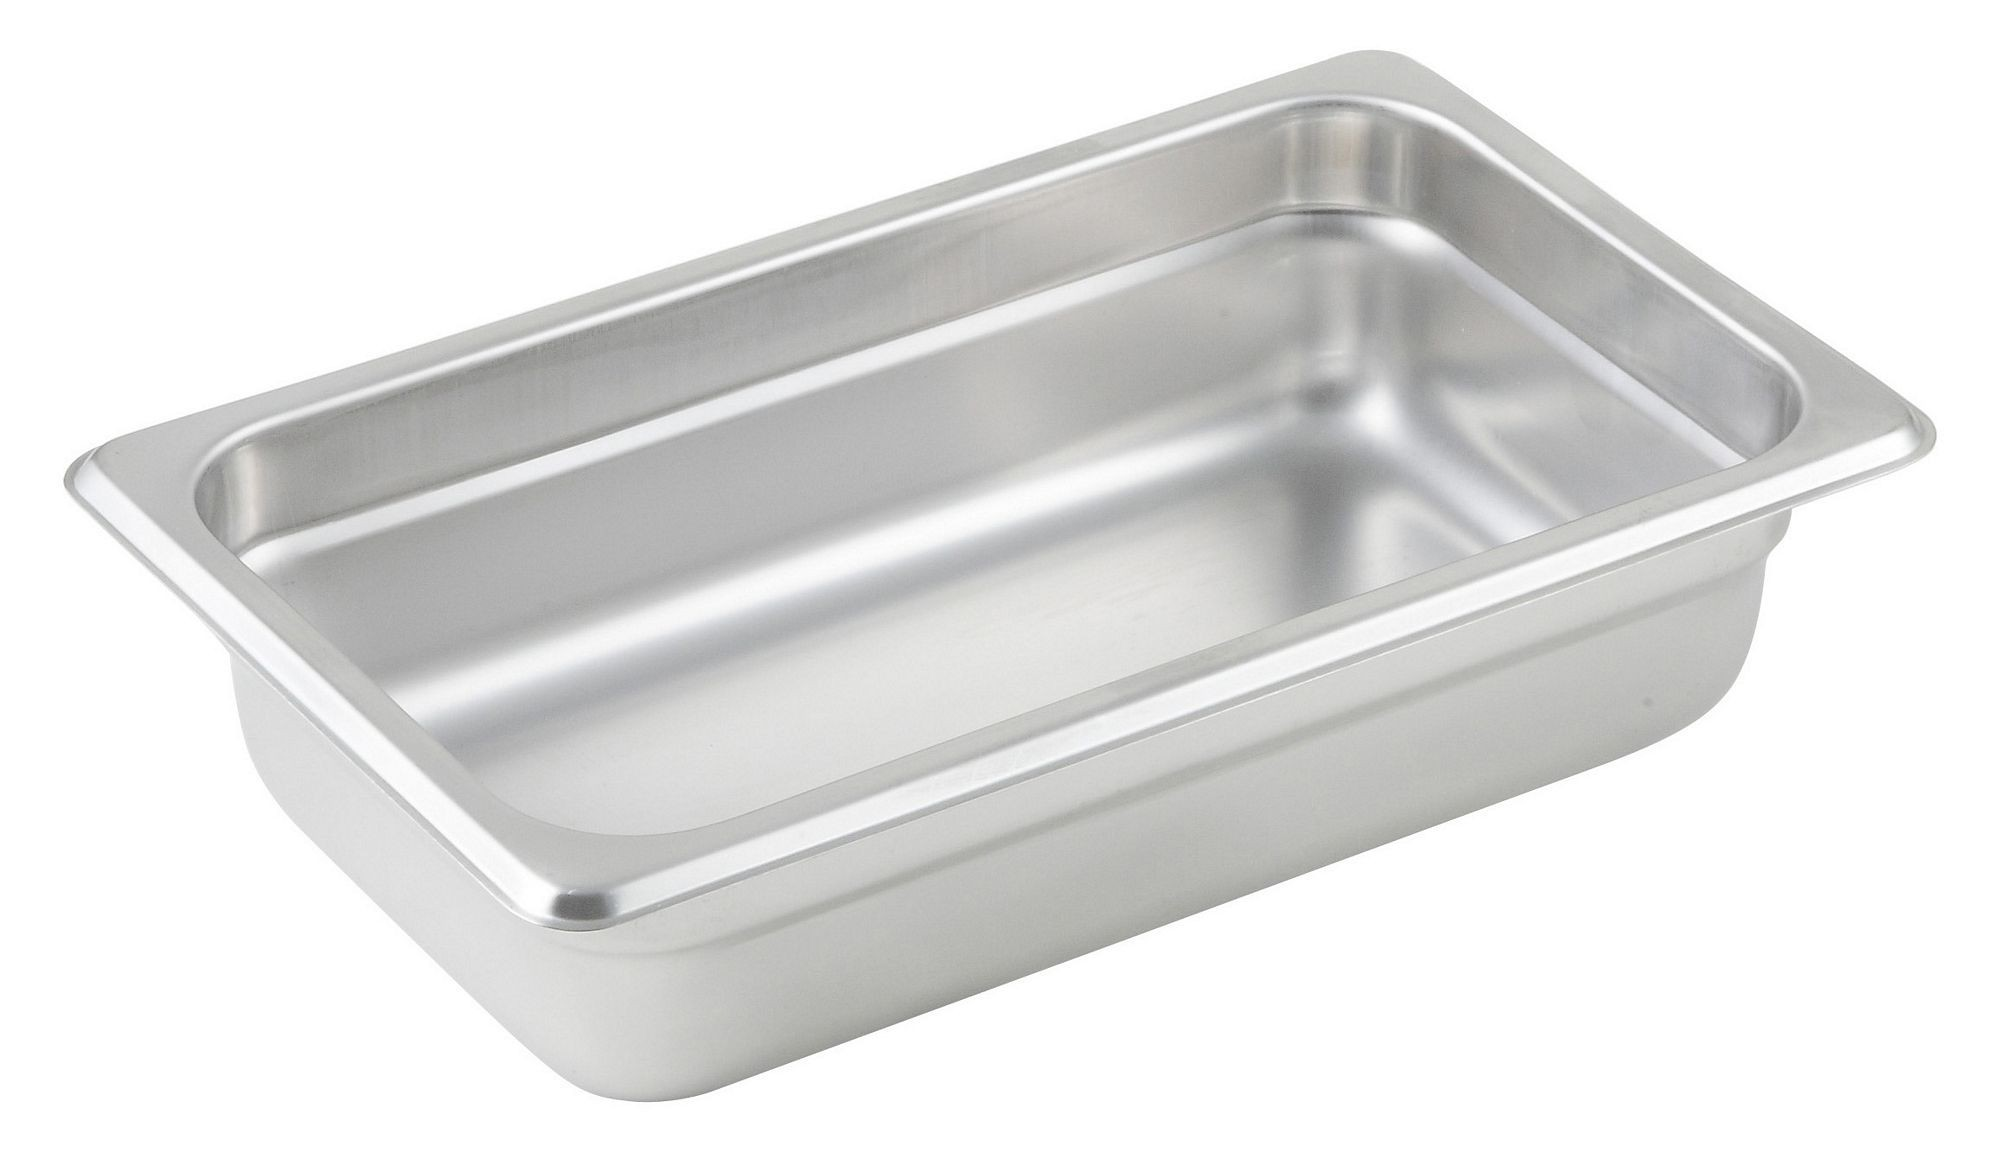 "Winco SPJP-402 1/4 Size Anti-Jam 23 Gauge Steam Table Pan 2-1/2"" Deep"